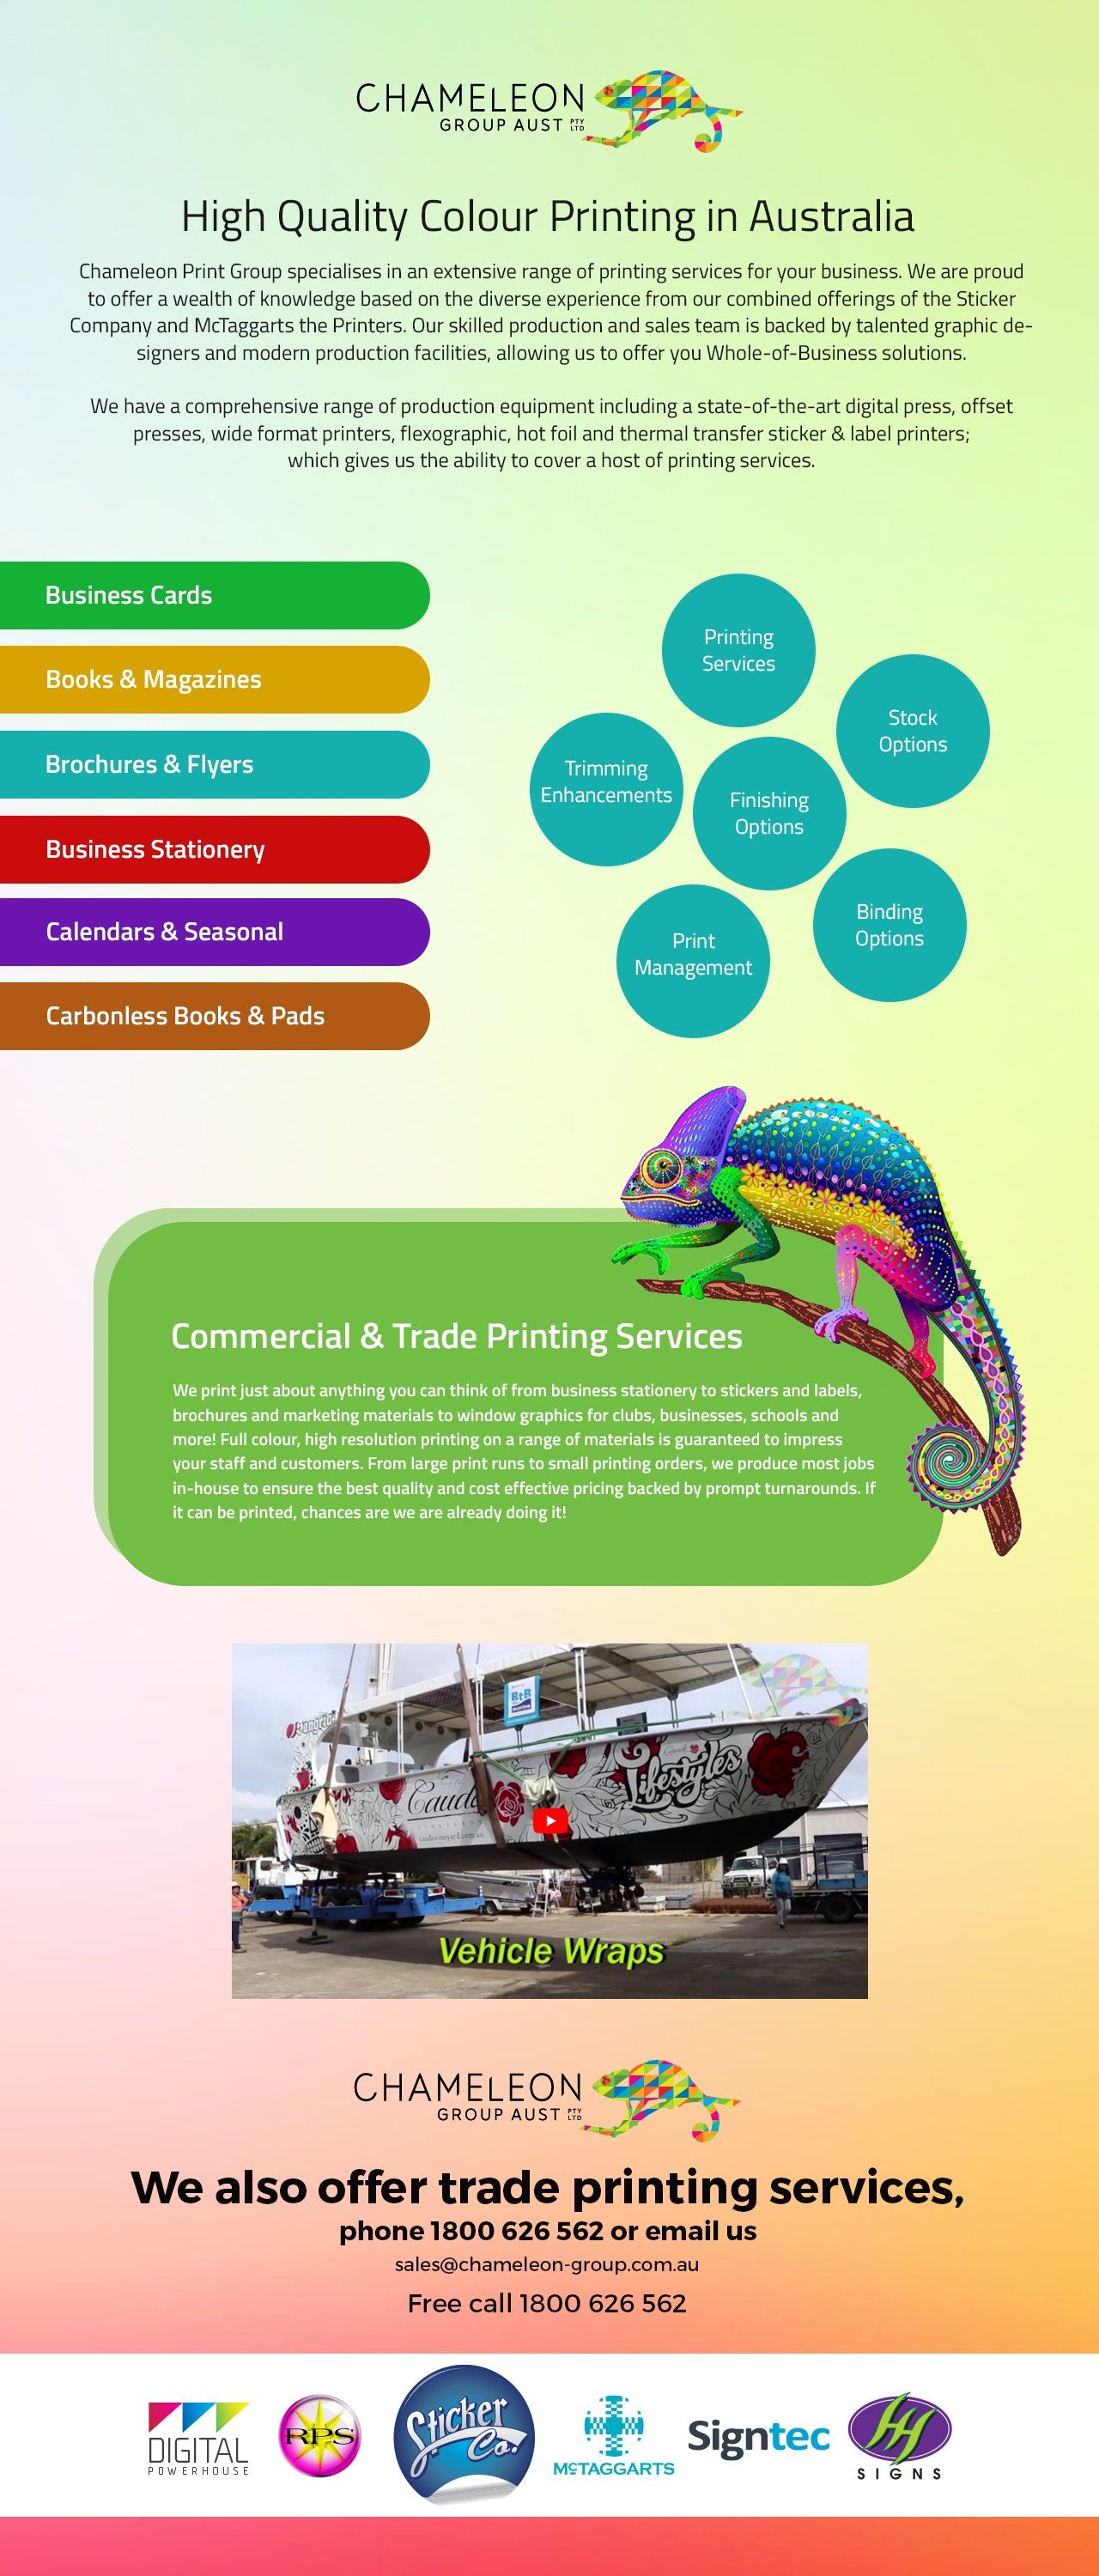 Printing services chameleon print group australia printing chameleon print group specialises in an extensive range of high quality colour printing in australia for reheart Images